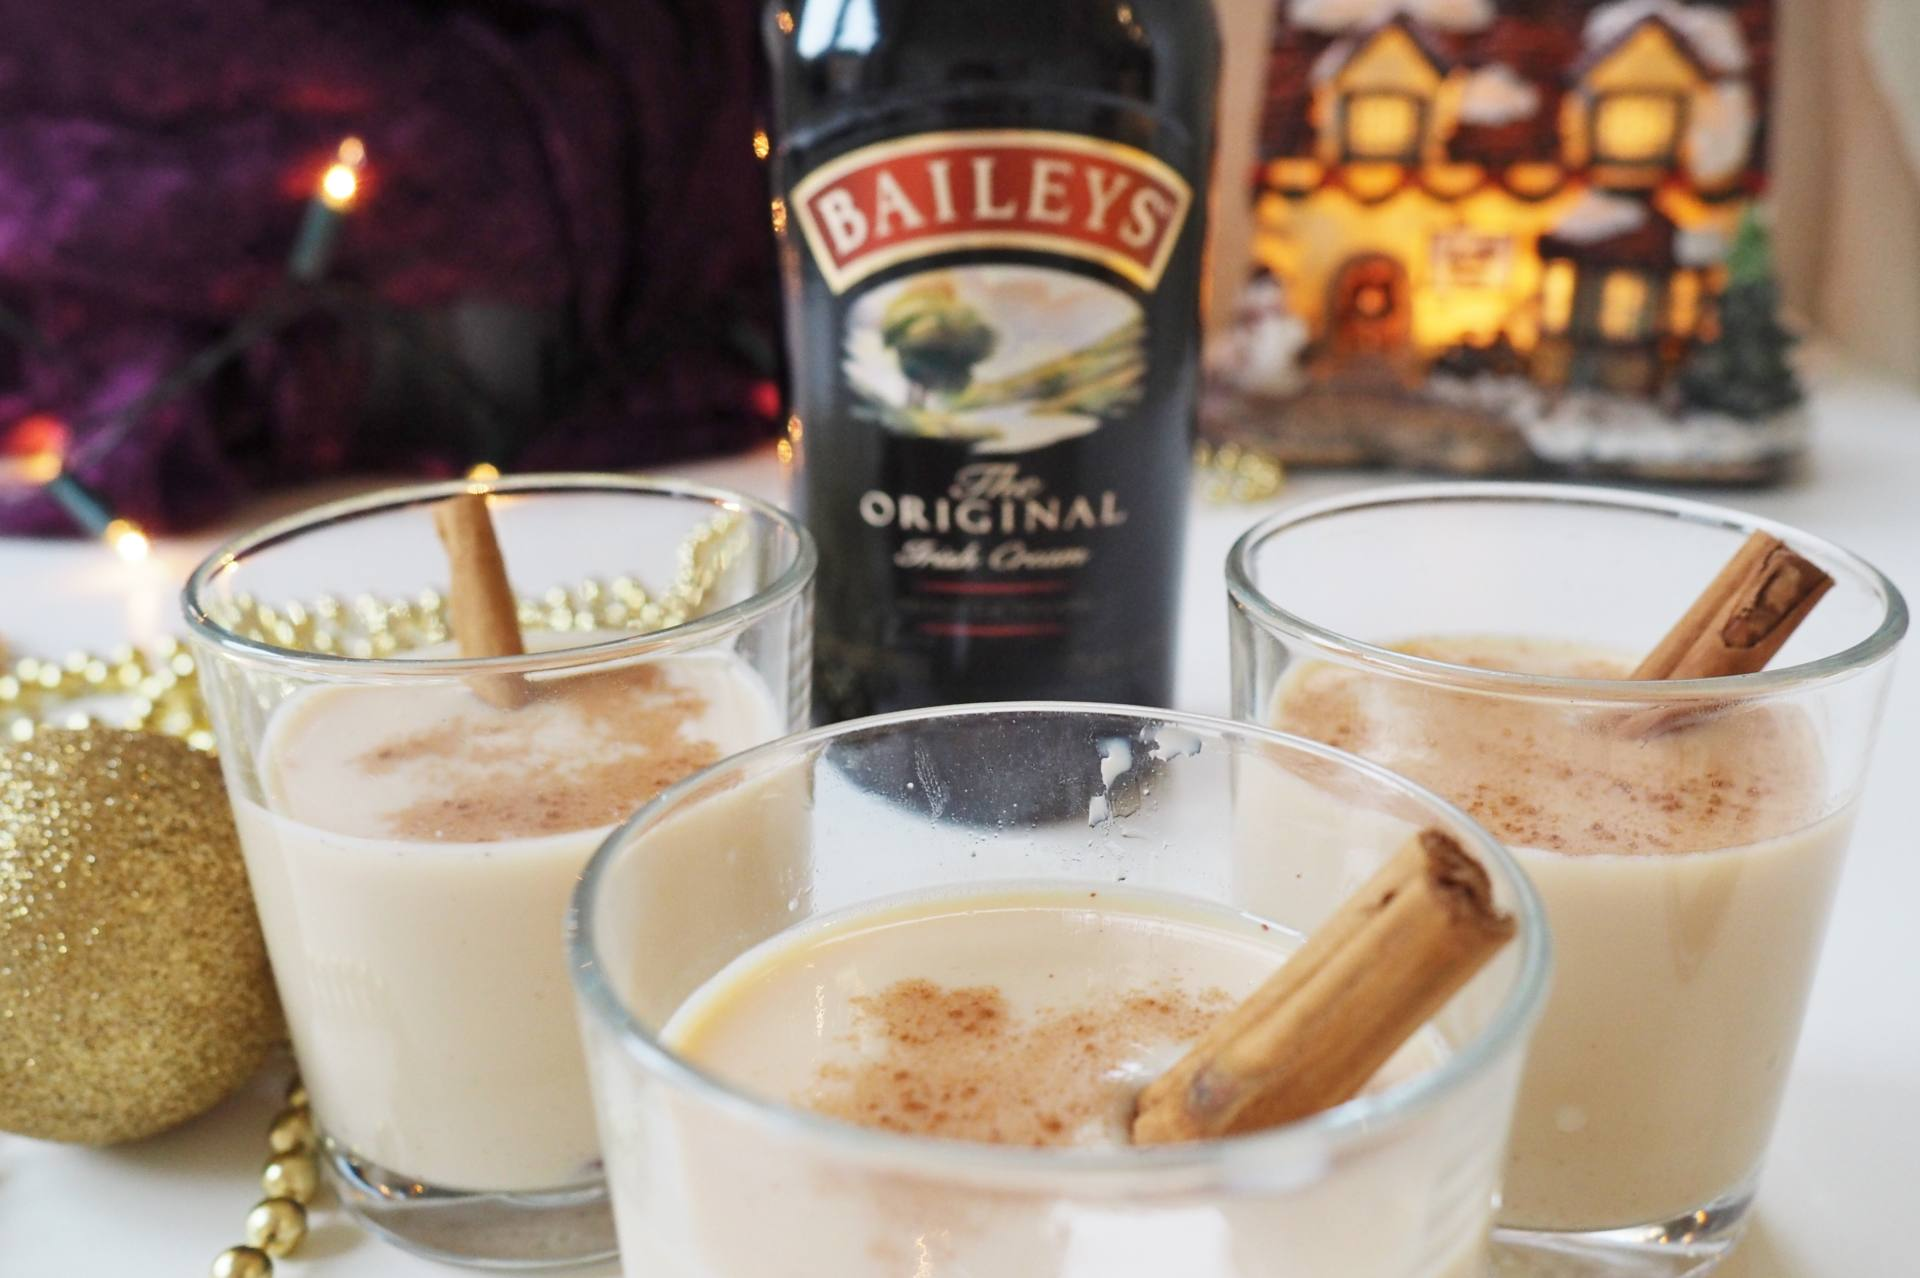 Emma Victoria Stokes Diageo Baileys Eggnog Cocktails Sponsored Post